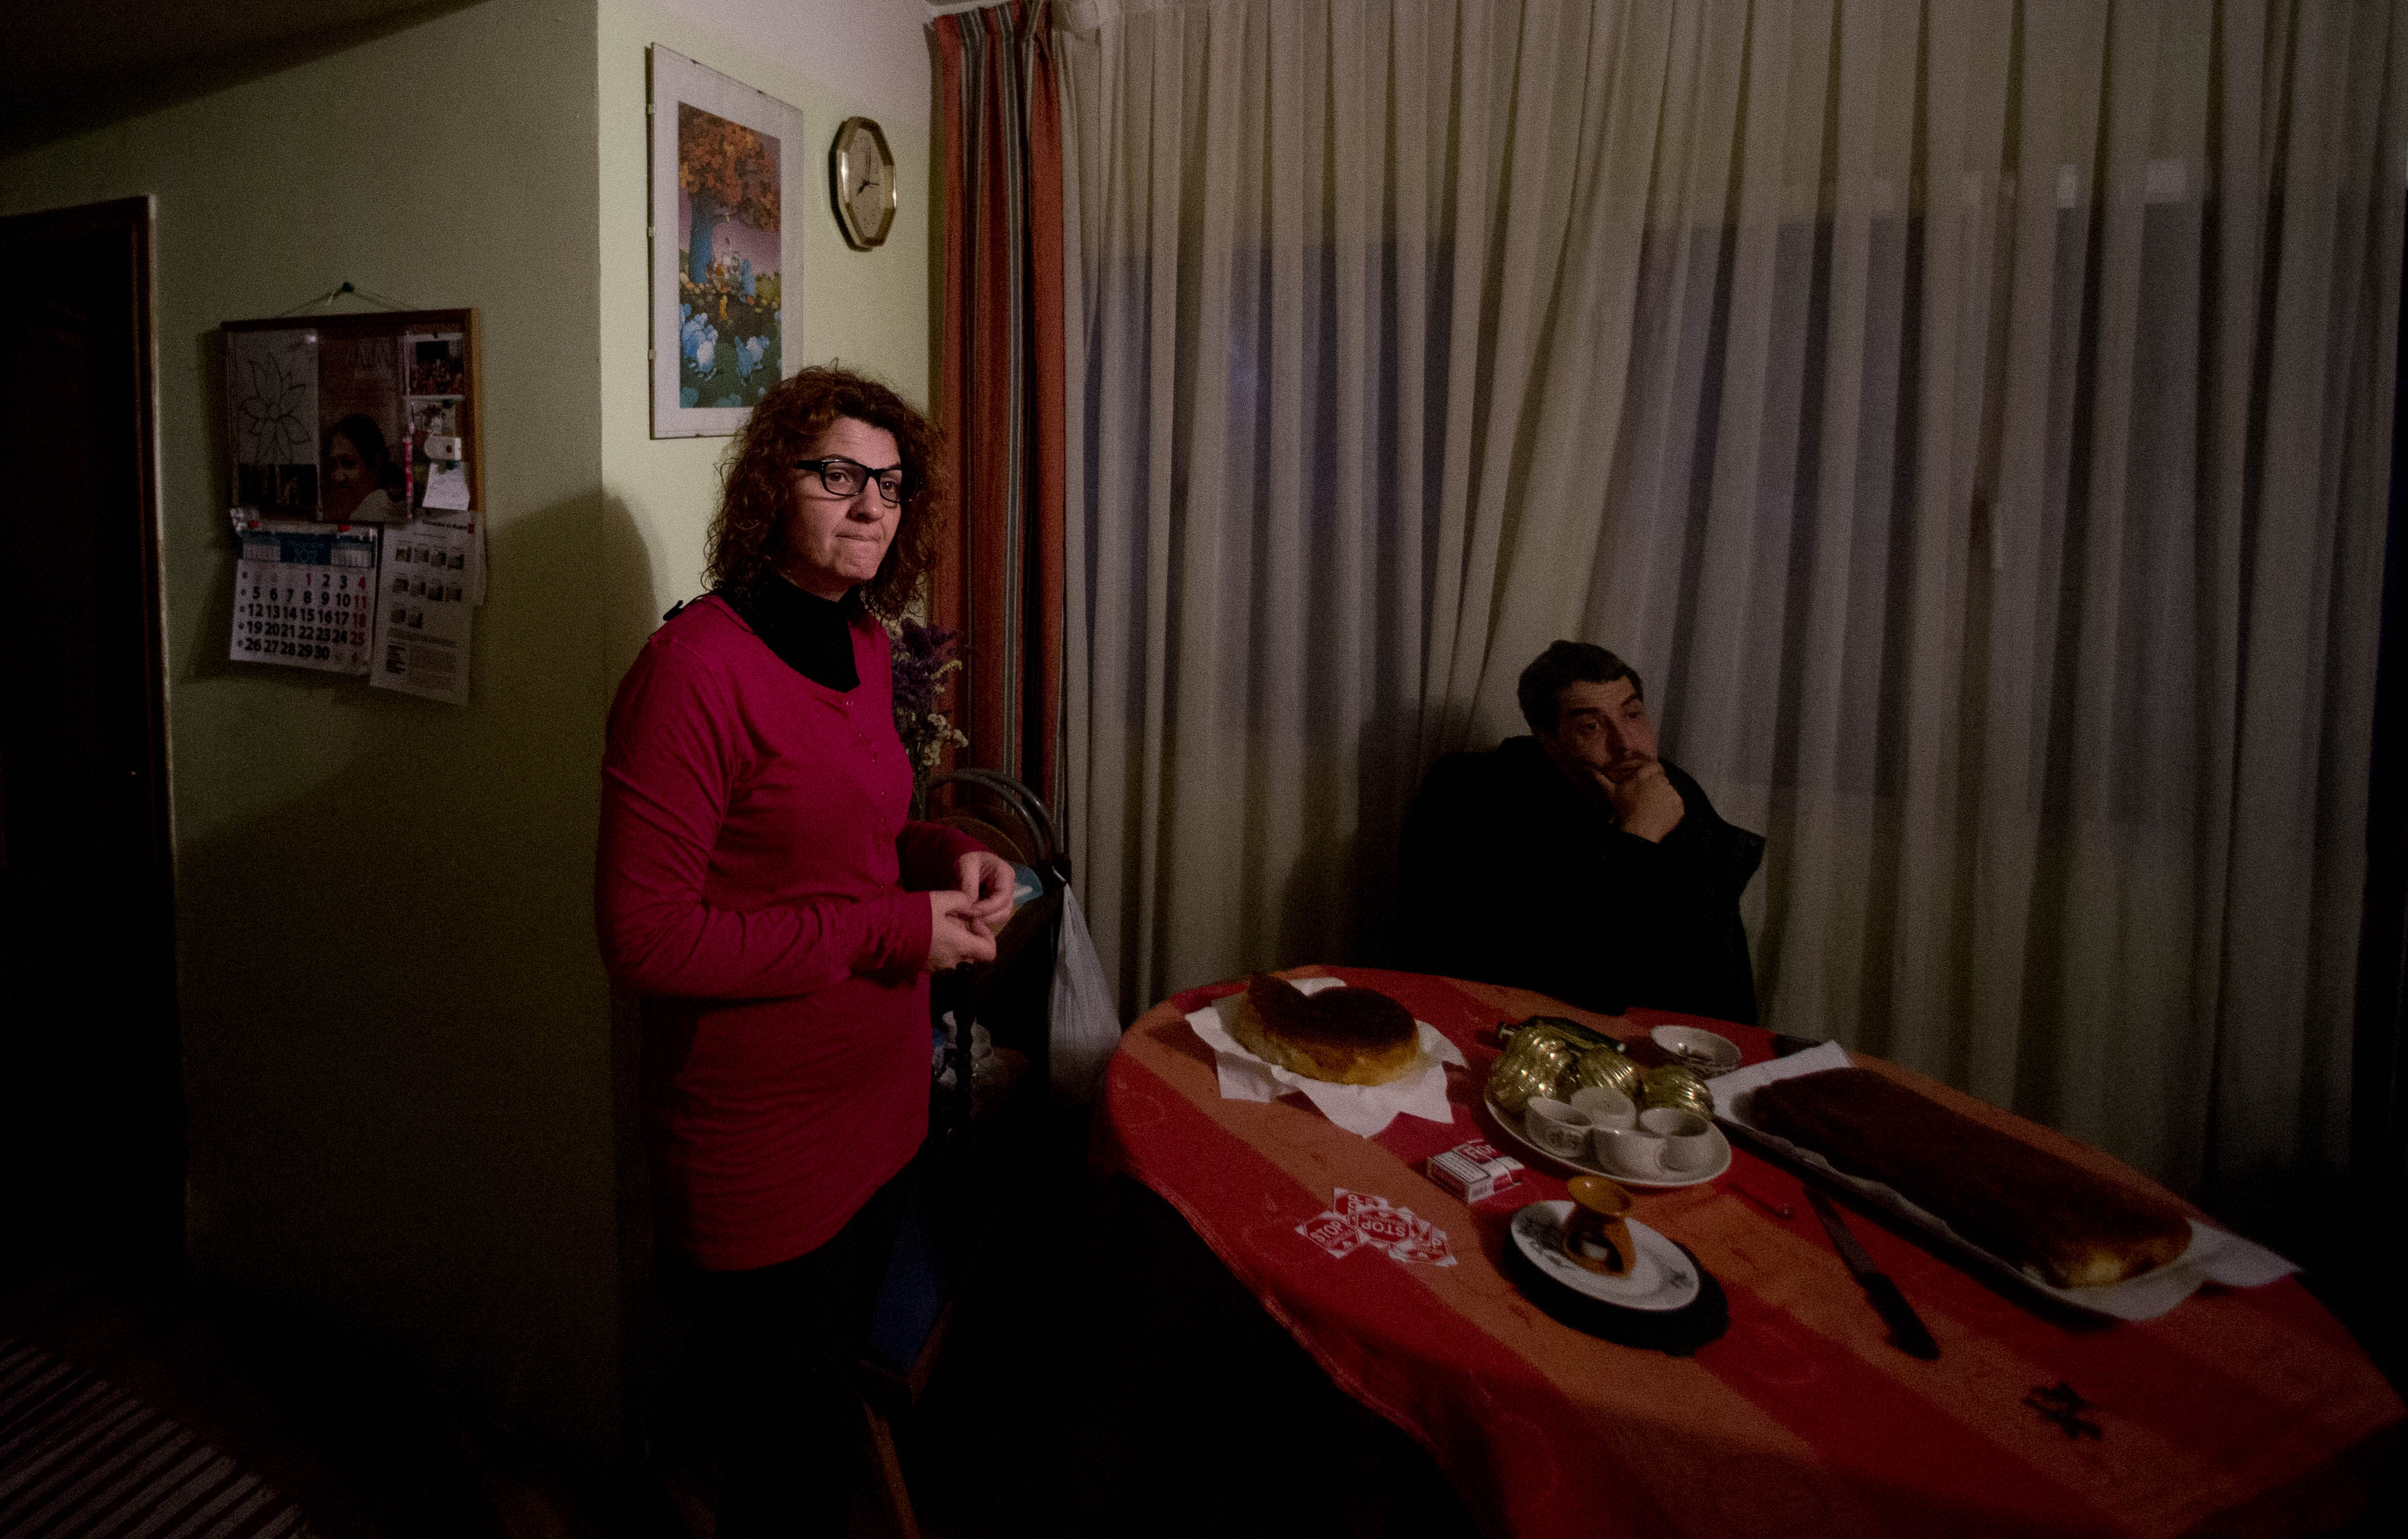 45-year old office manager Irene Gonzalez of Spain, left waits with a friend, to be evicted from her home, in Madrid, Monday Nov. 19, 2012. The police and court officials did not show up at the planned time and she still does not know if they will come later or on another day to evict her. Spain recently approved a two-year suspension of evictions for some needy homeowners unable to pay their mortgages, but activists said the government failed to address the larger issue of how those who give up their homes may still remain indebted, sometimes for the rest of their lives. Public attention on the issue intensified greatly in recent weeks after two homeowners facing eviction committed suicide. (AP Photo/Paul White)